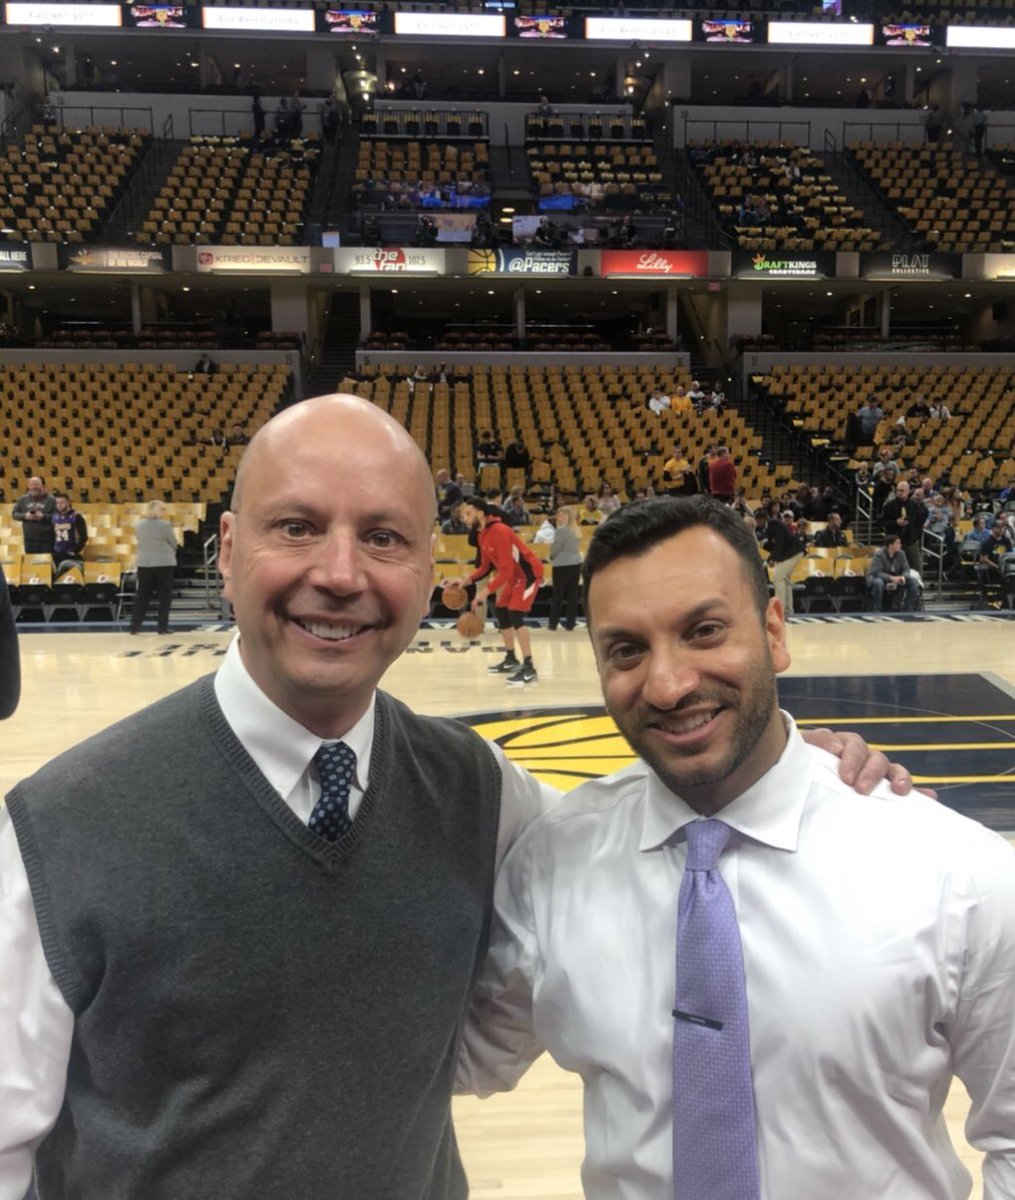 Congratulations to the new TV play by play announcer of the @chicagobulls @adamamin ! Adam is extremely gifted and will do a fabulous job with the great @Stacey21King  I would be remiss if I didn't acknowledge and thank Neil Funk for his years of spectacular play calling=legend. https://t.co/EQzITy2ULy